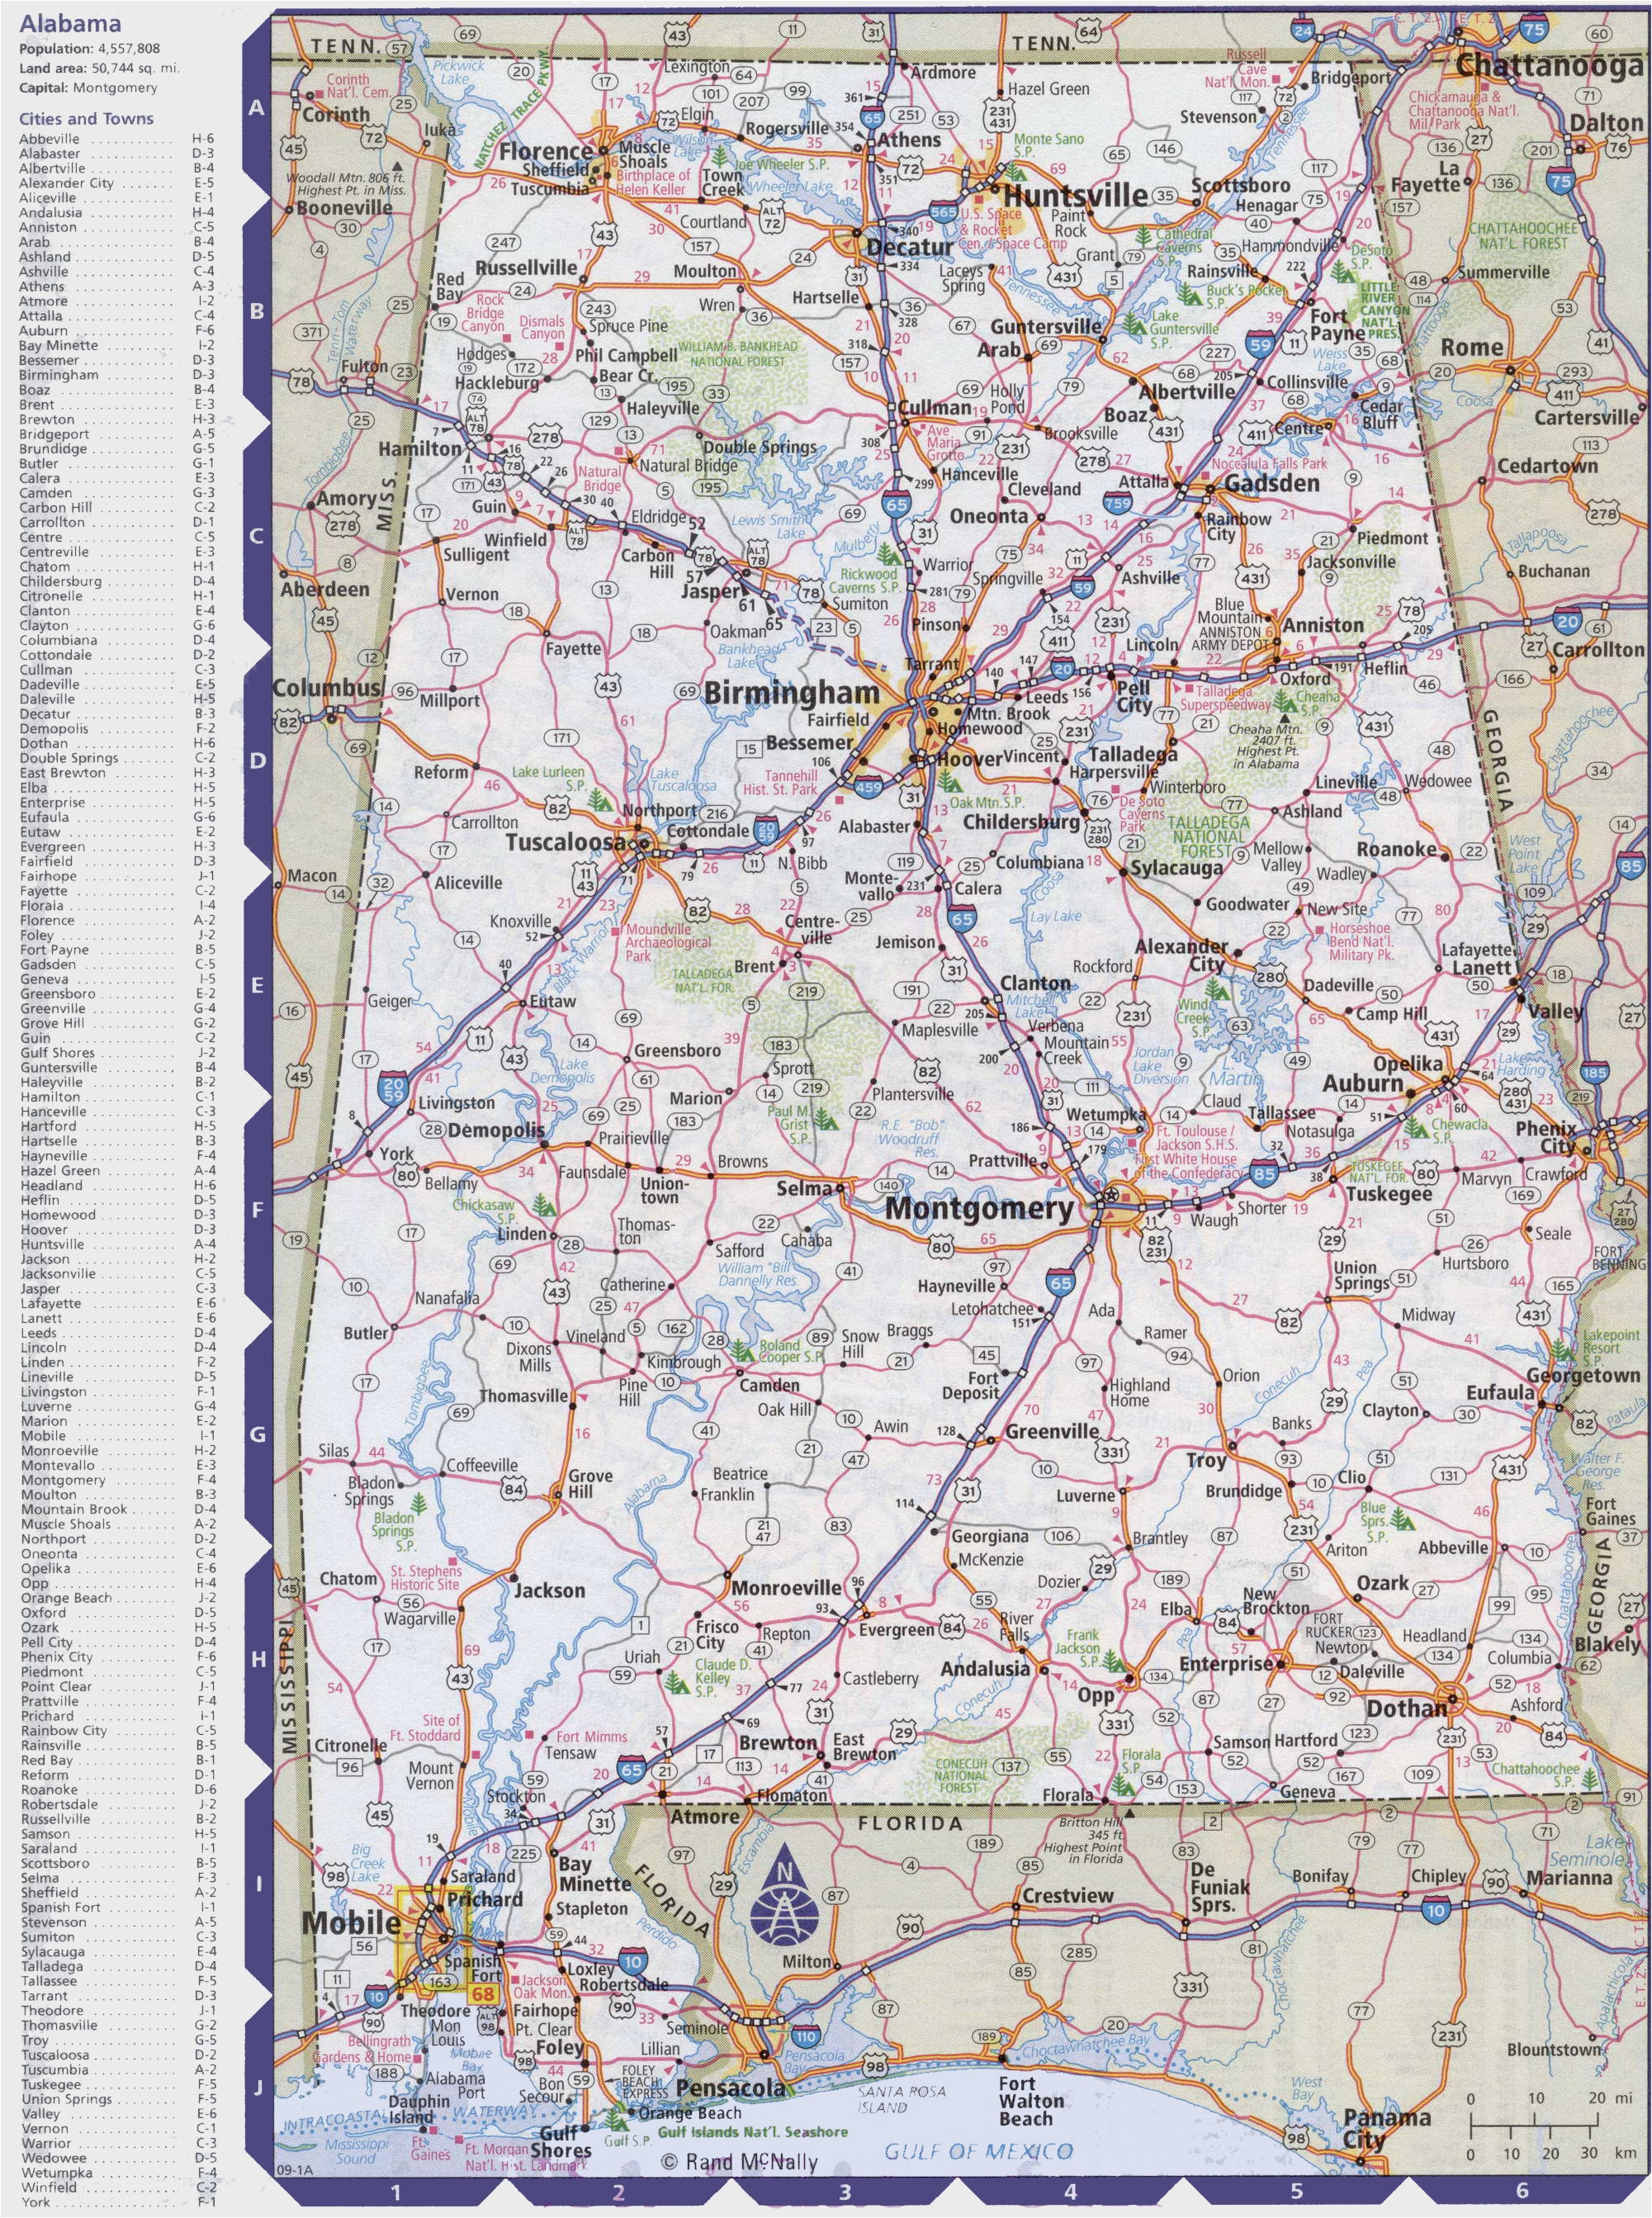 Printable Map Of Alabama Map Of Alabama with Cities and towns